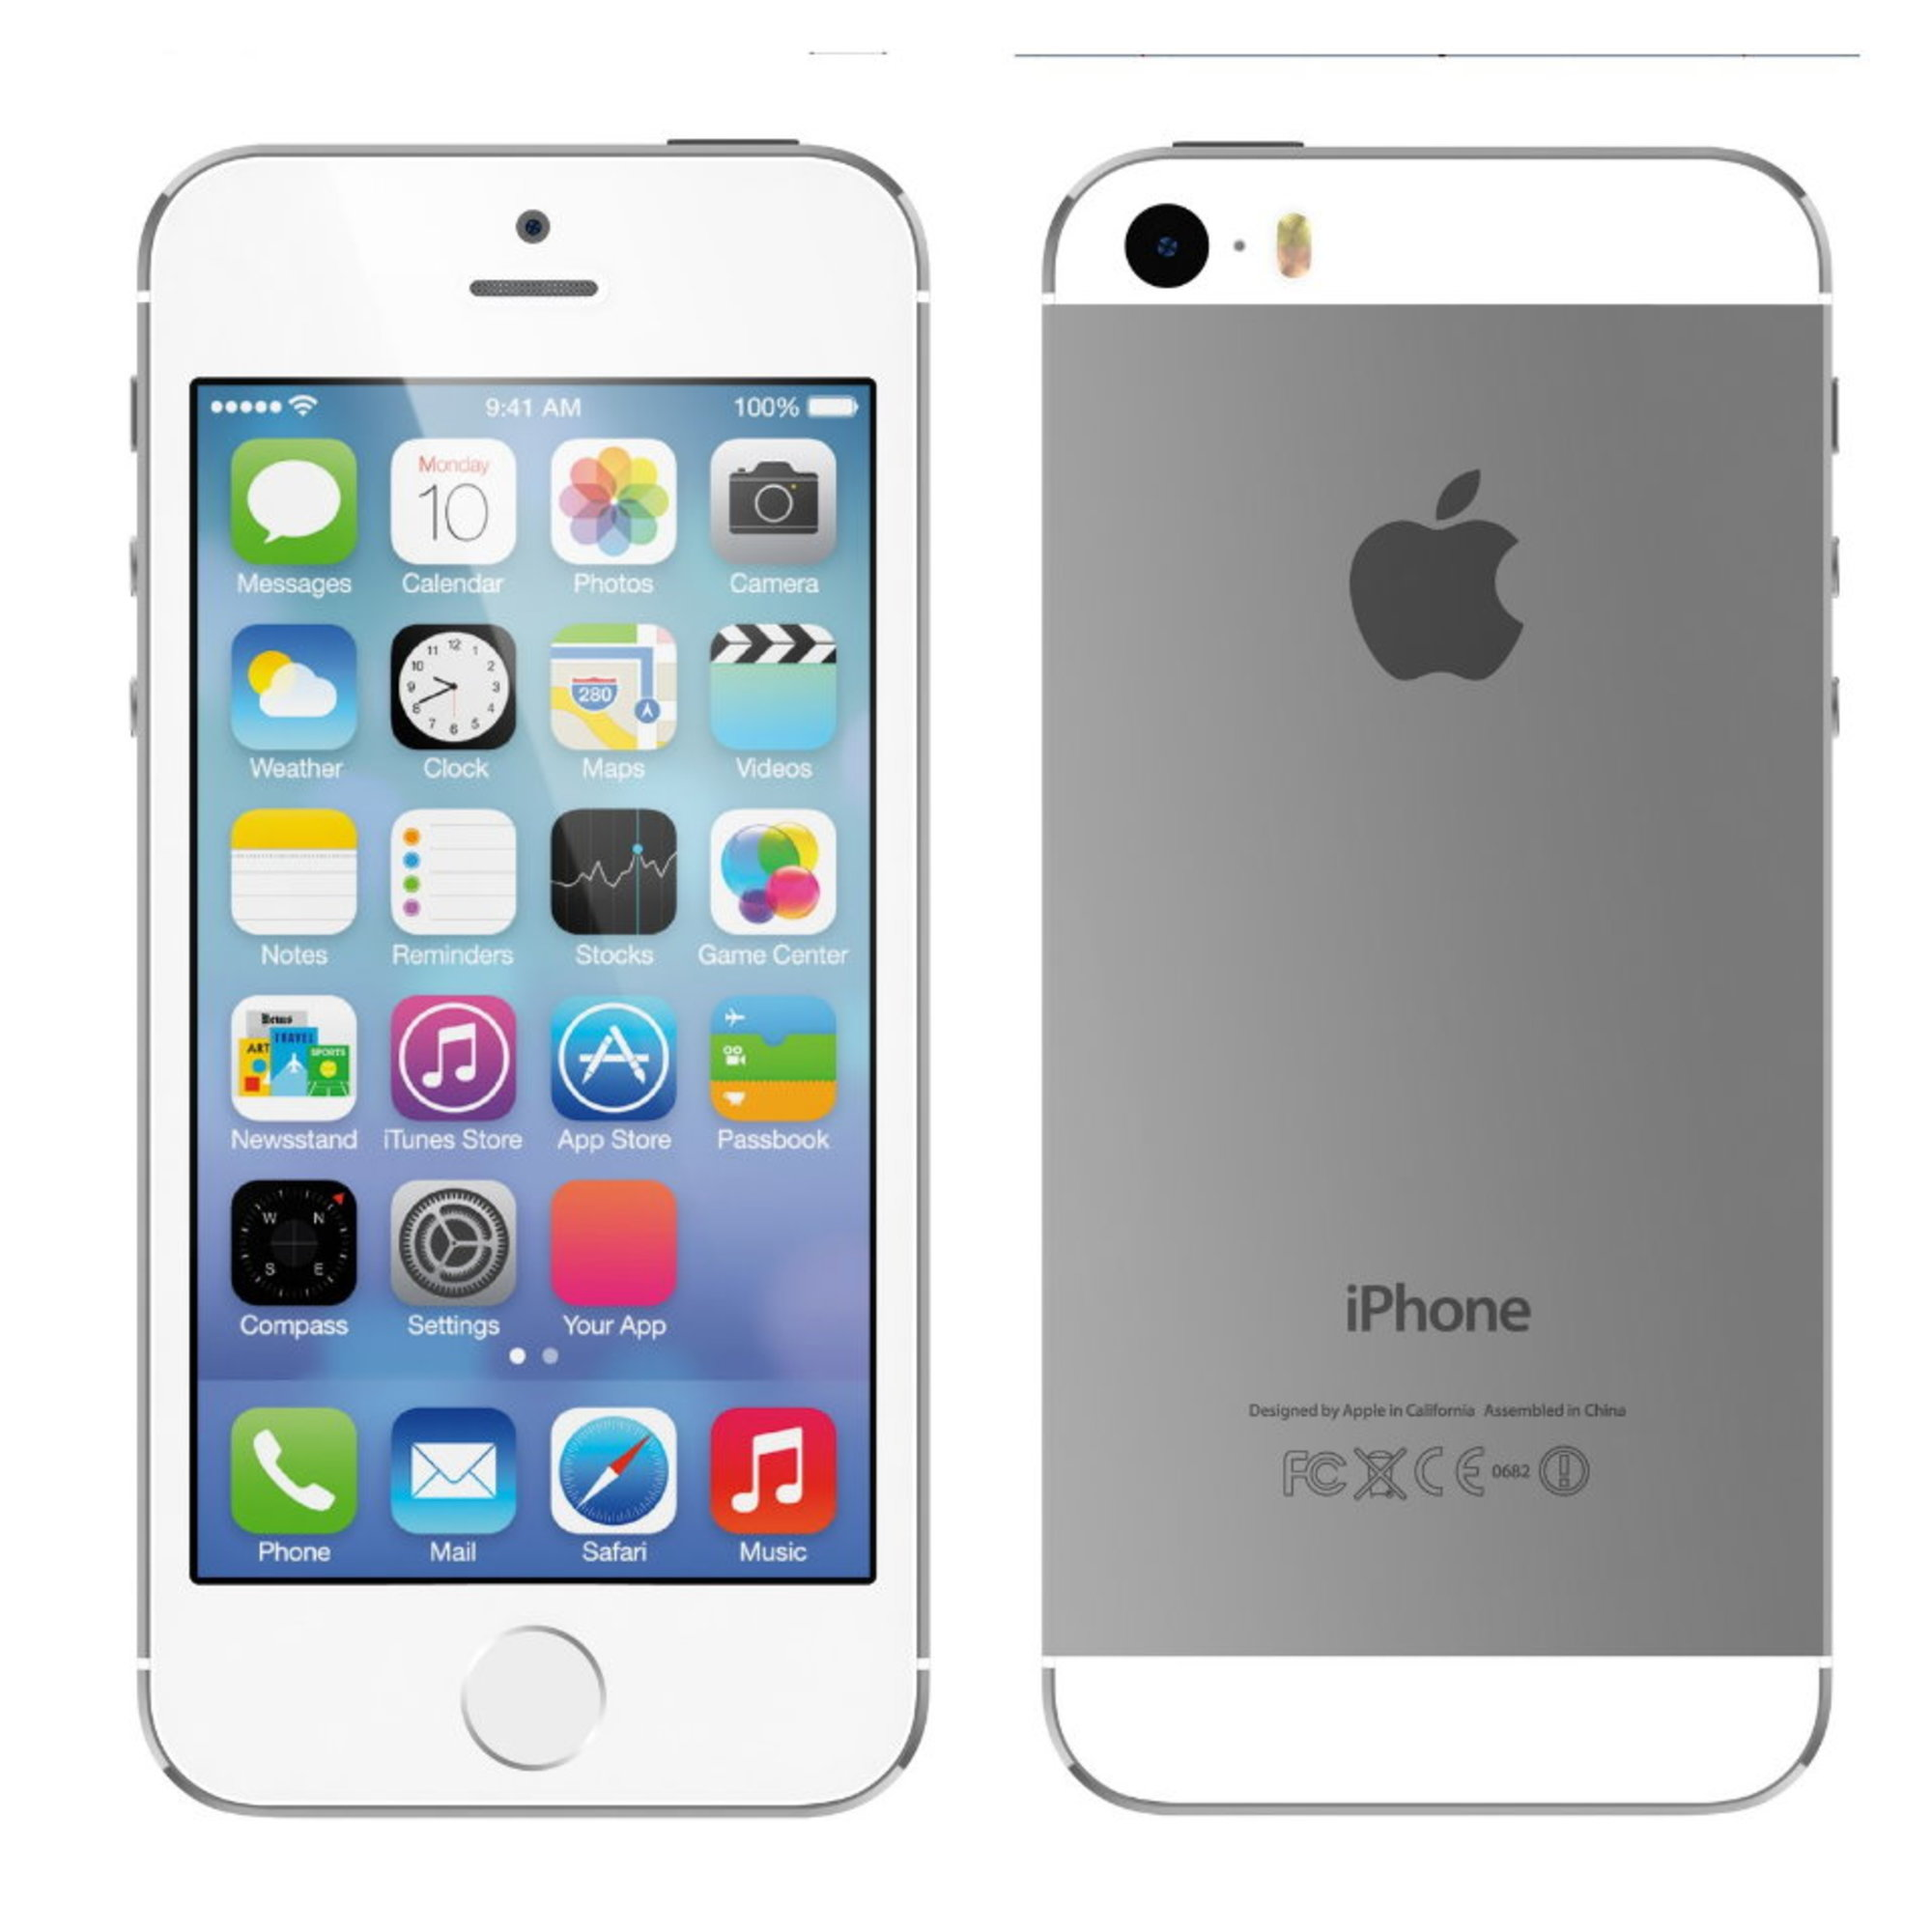 iphone 5 and 5s apple iphone 5s 16gb unlocked gsm lte dualcore 8mp phone 4128